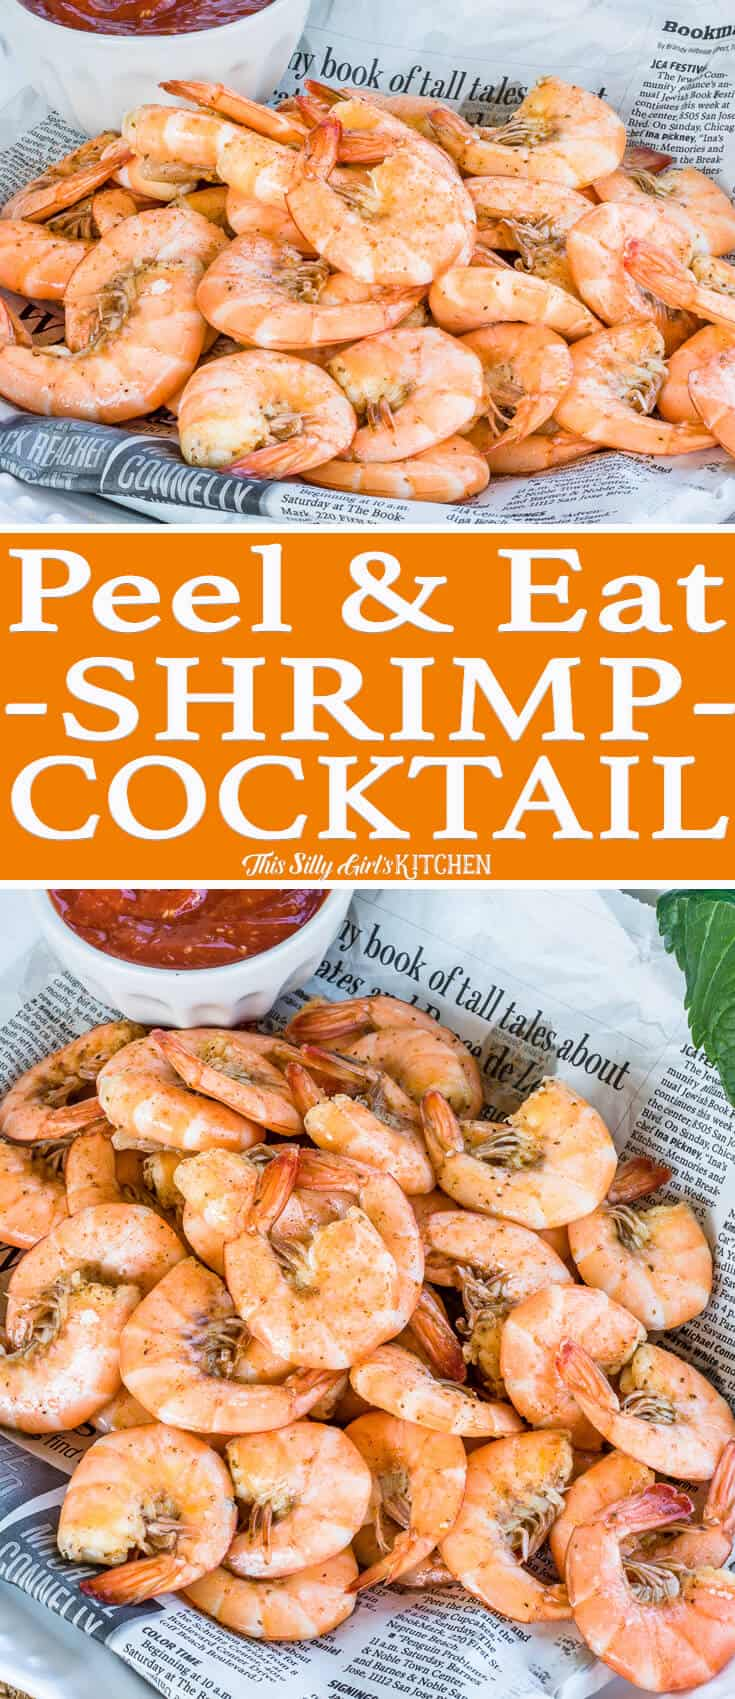 Peel and Eat Shrimp Cocktail, boiled in a rich beer stock makes this one super flavorful shrimp cocktail!